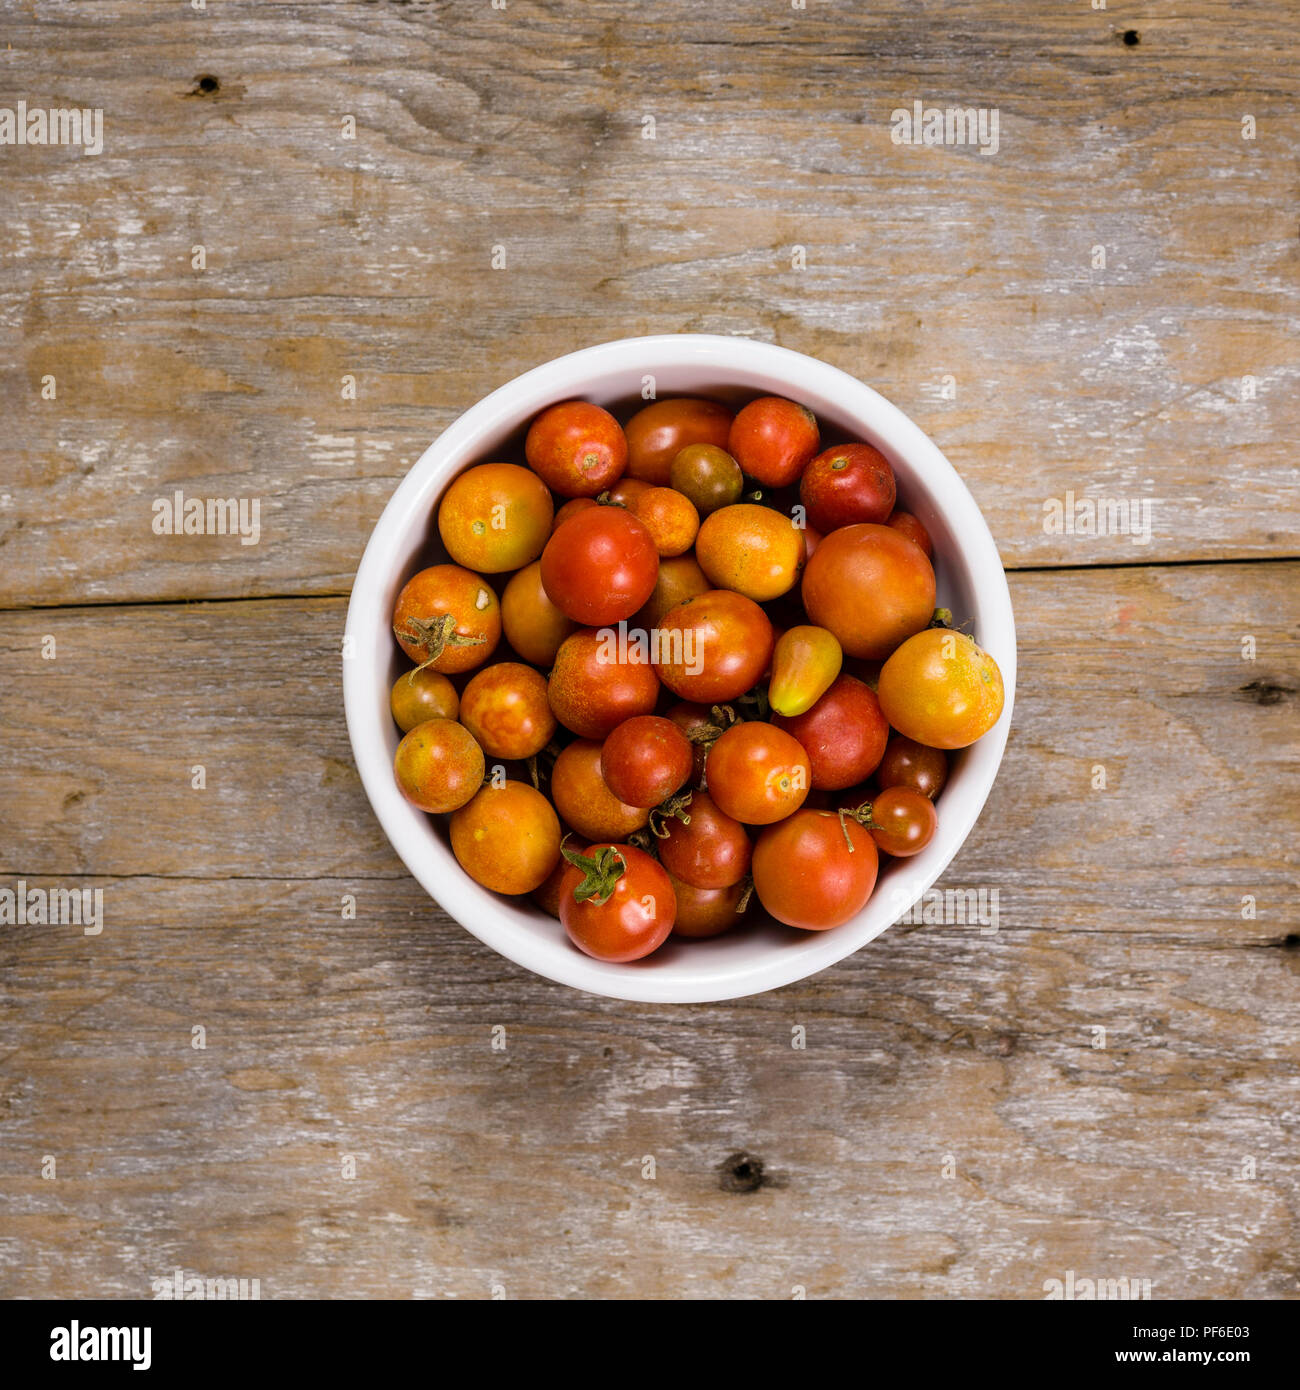 You could use this bowl of tomatoes to help you communicate with plenty of room to overlay some text across the 'Board' - Stock Image